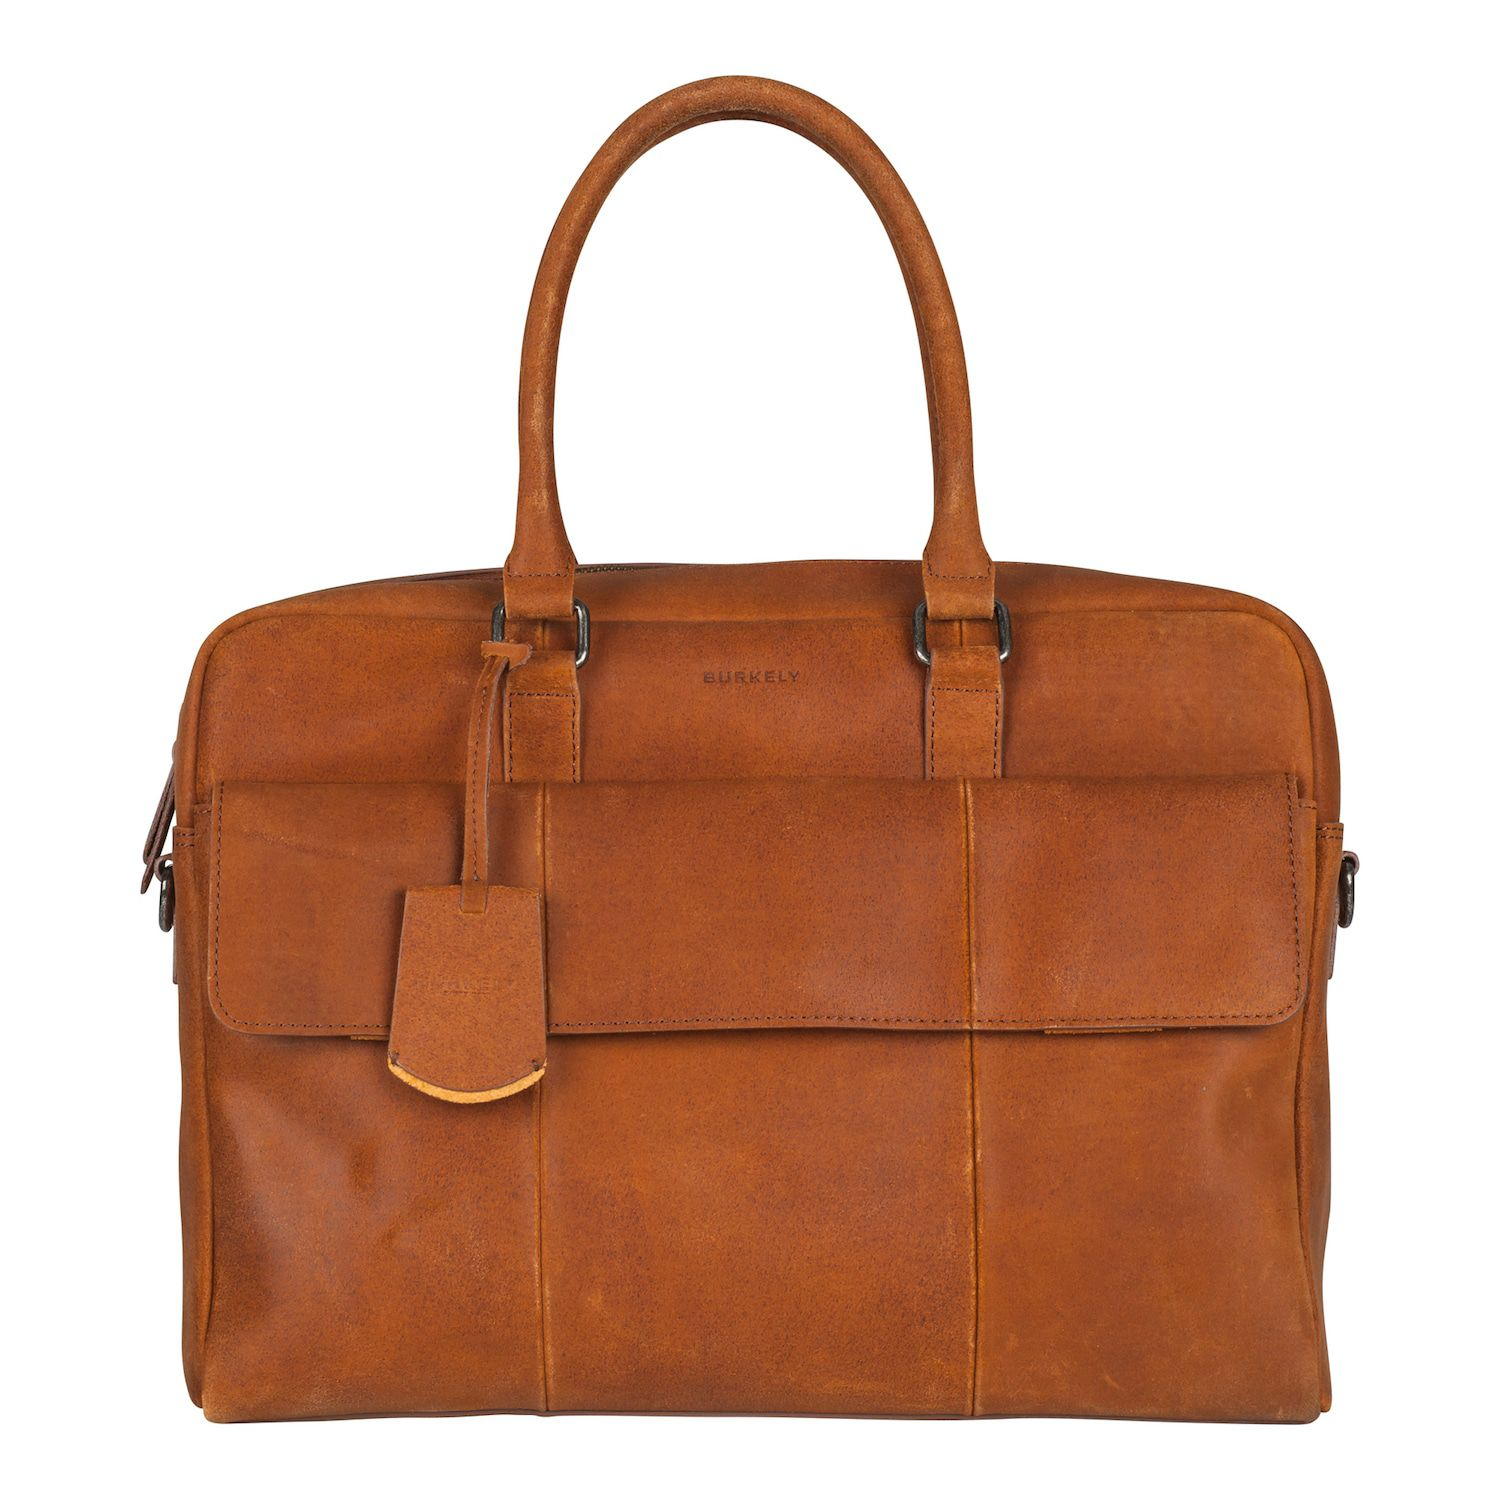 Burkely On The Move Laptopbag Flap Cognac 15 inch